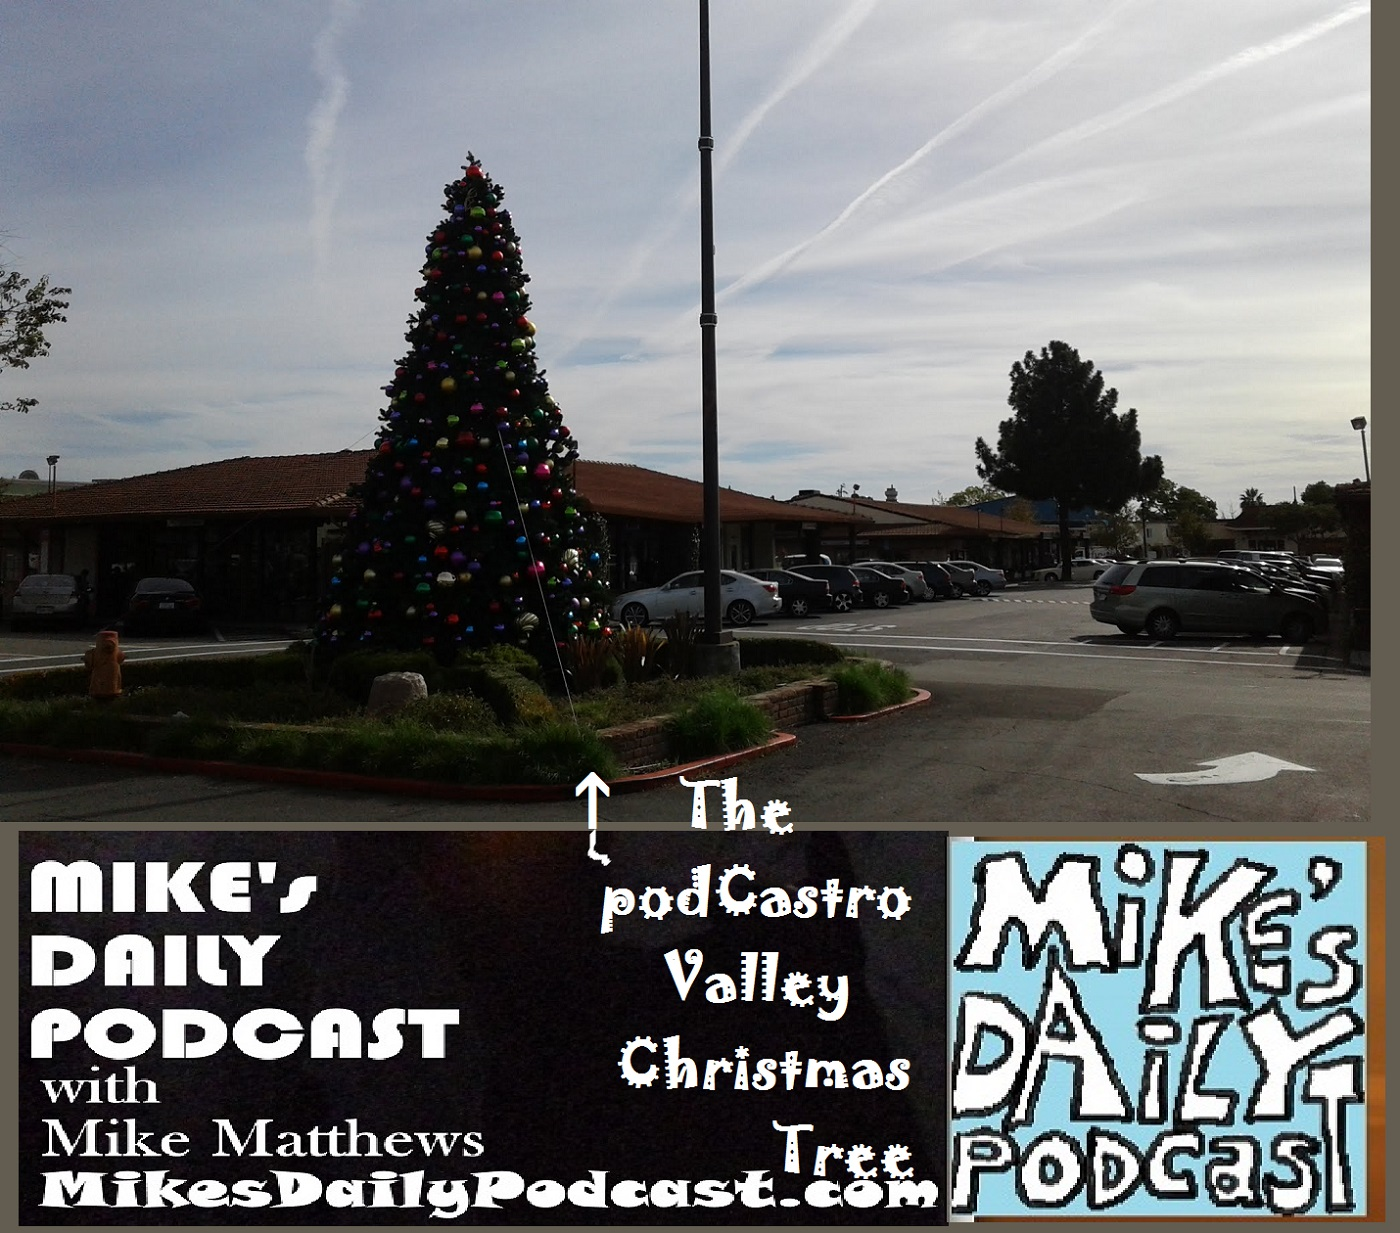 mikes-daily-podcast-1227-christmas-tree-castro-valley